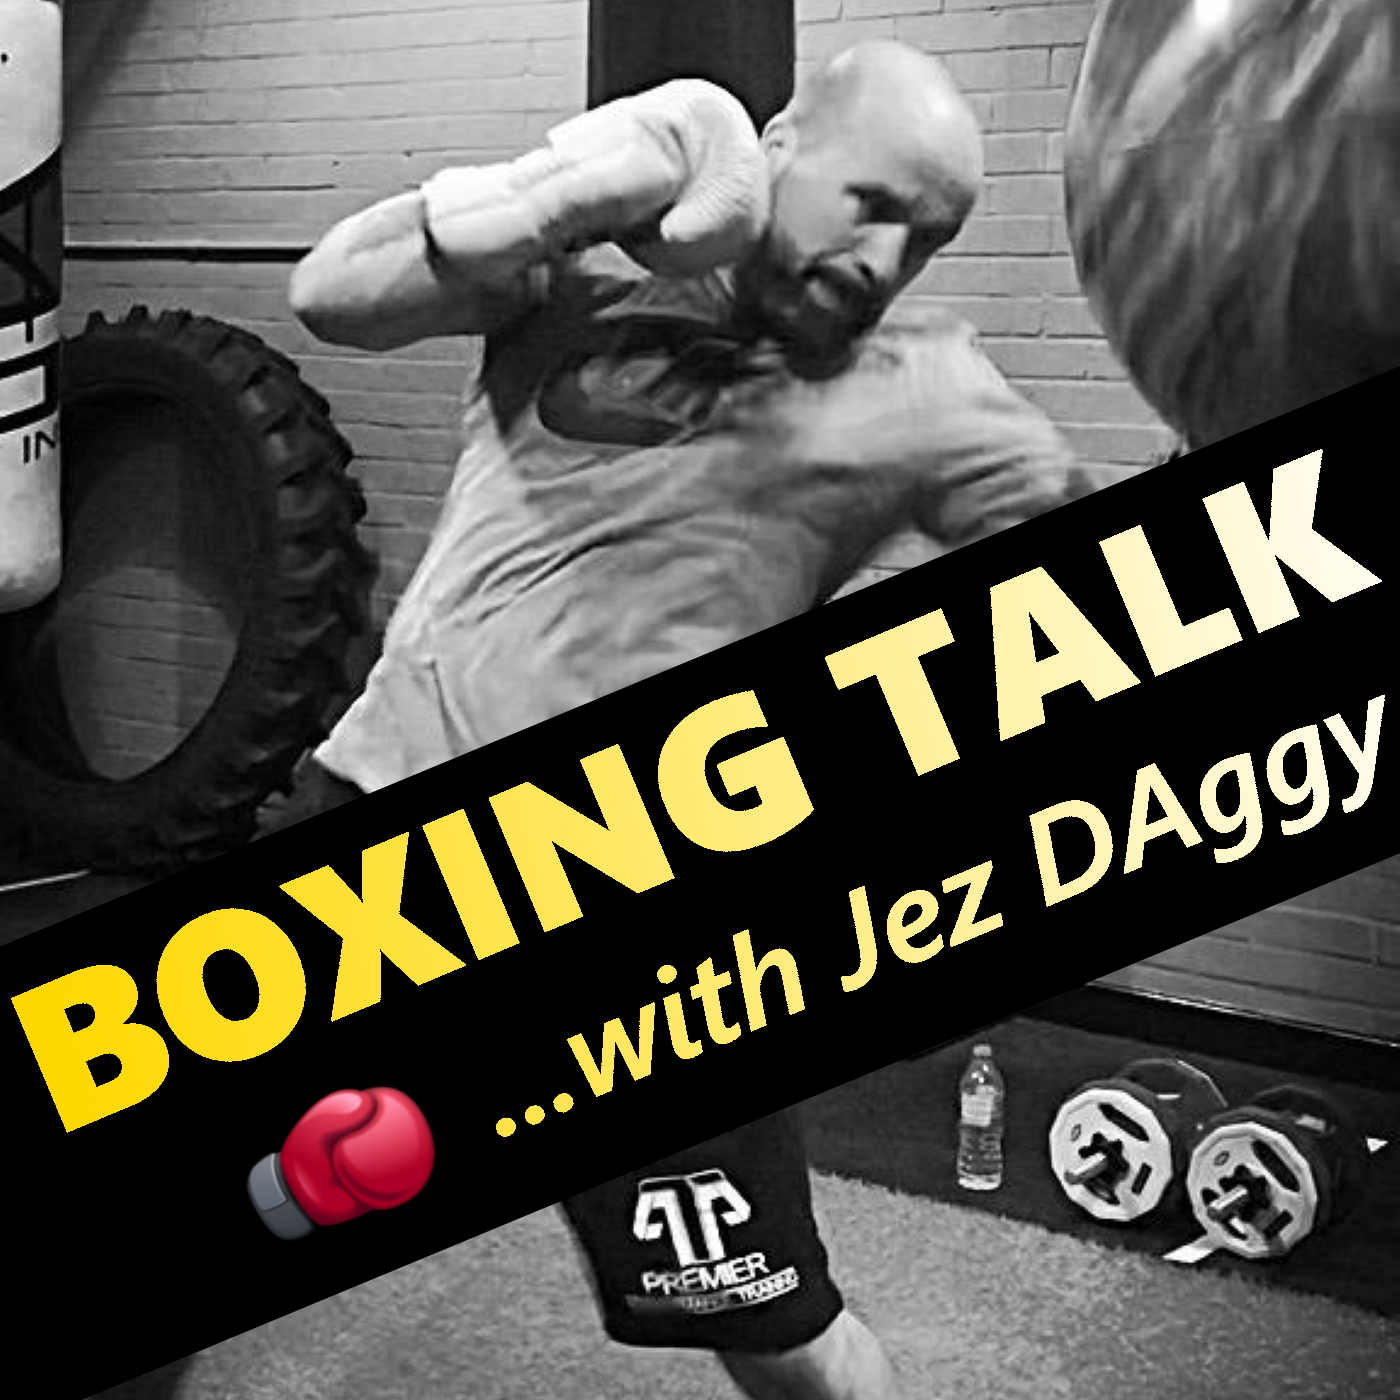 Boxing Talk with Jez DAggy